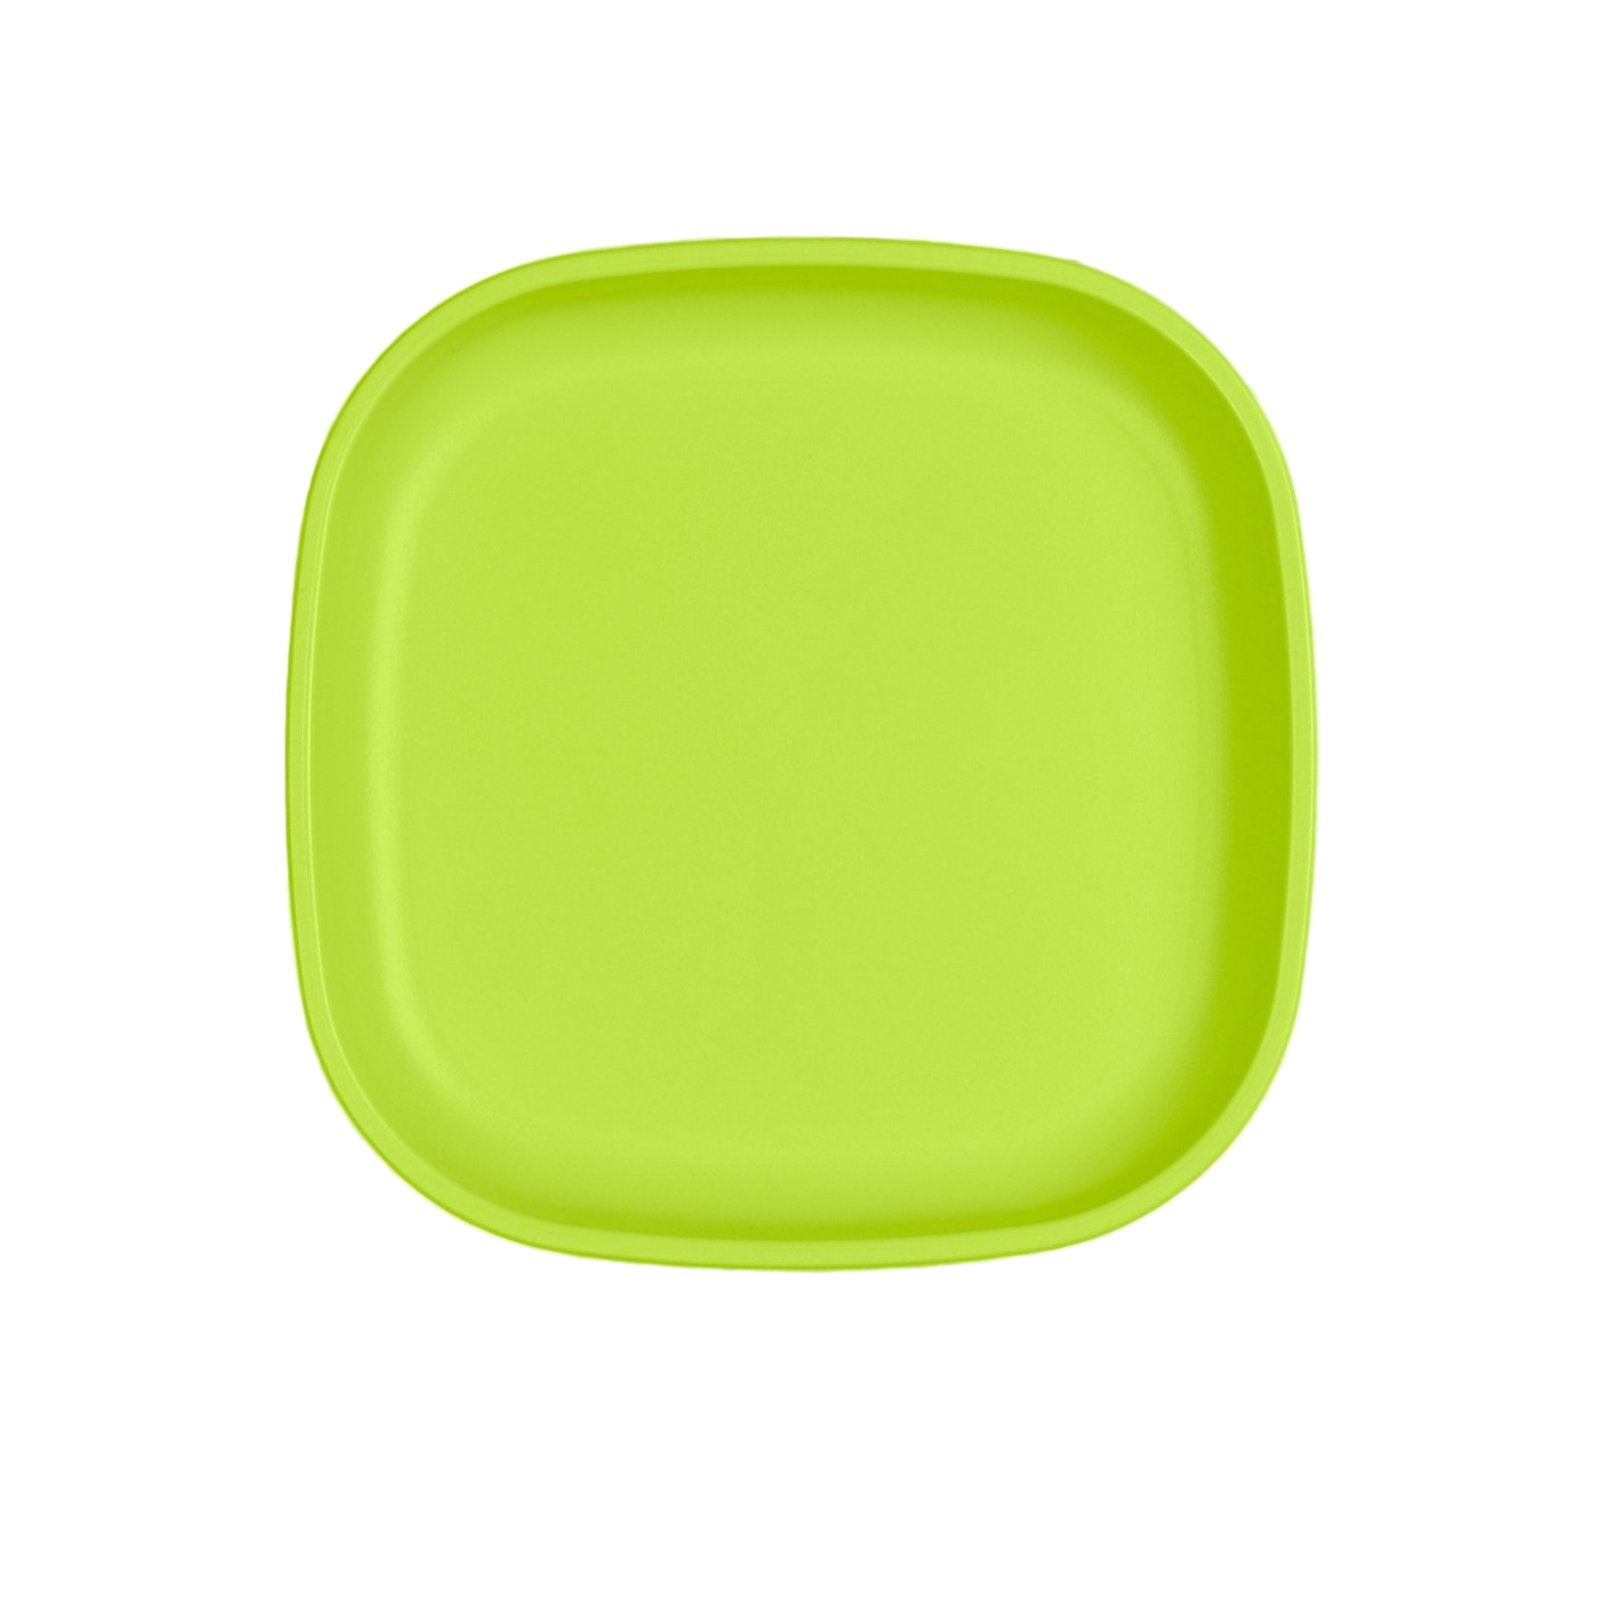 Replay Large Plate Replay Dinnerware Green at Little Earth Nest Eco Shop